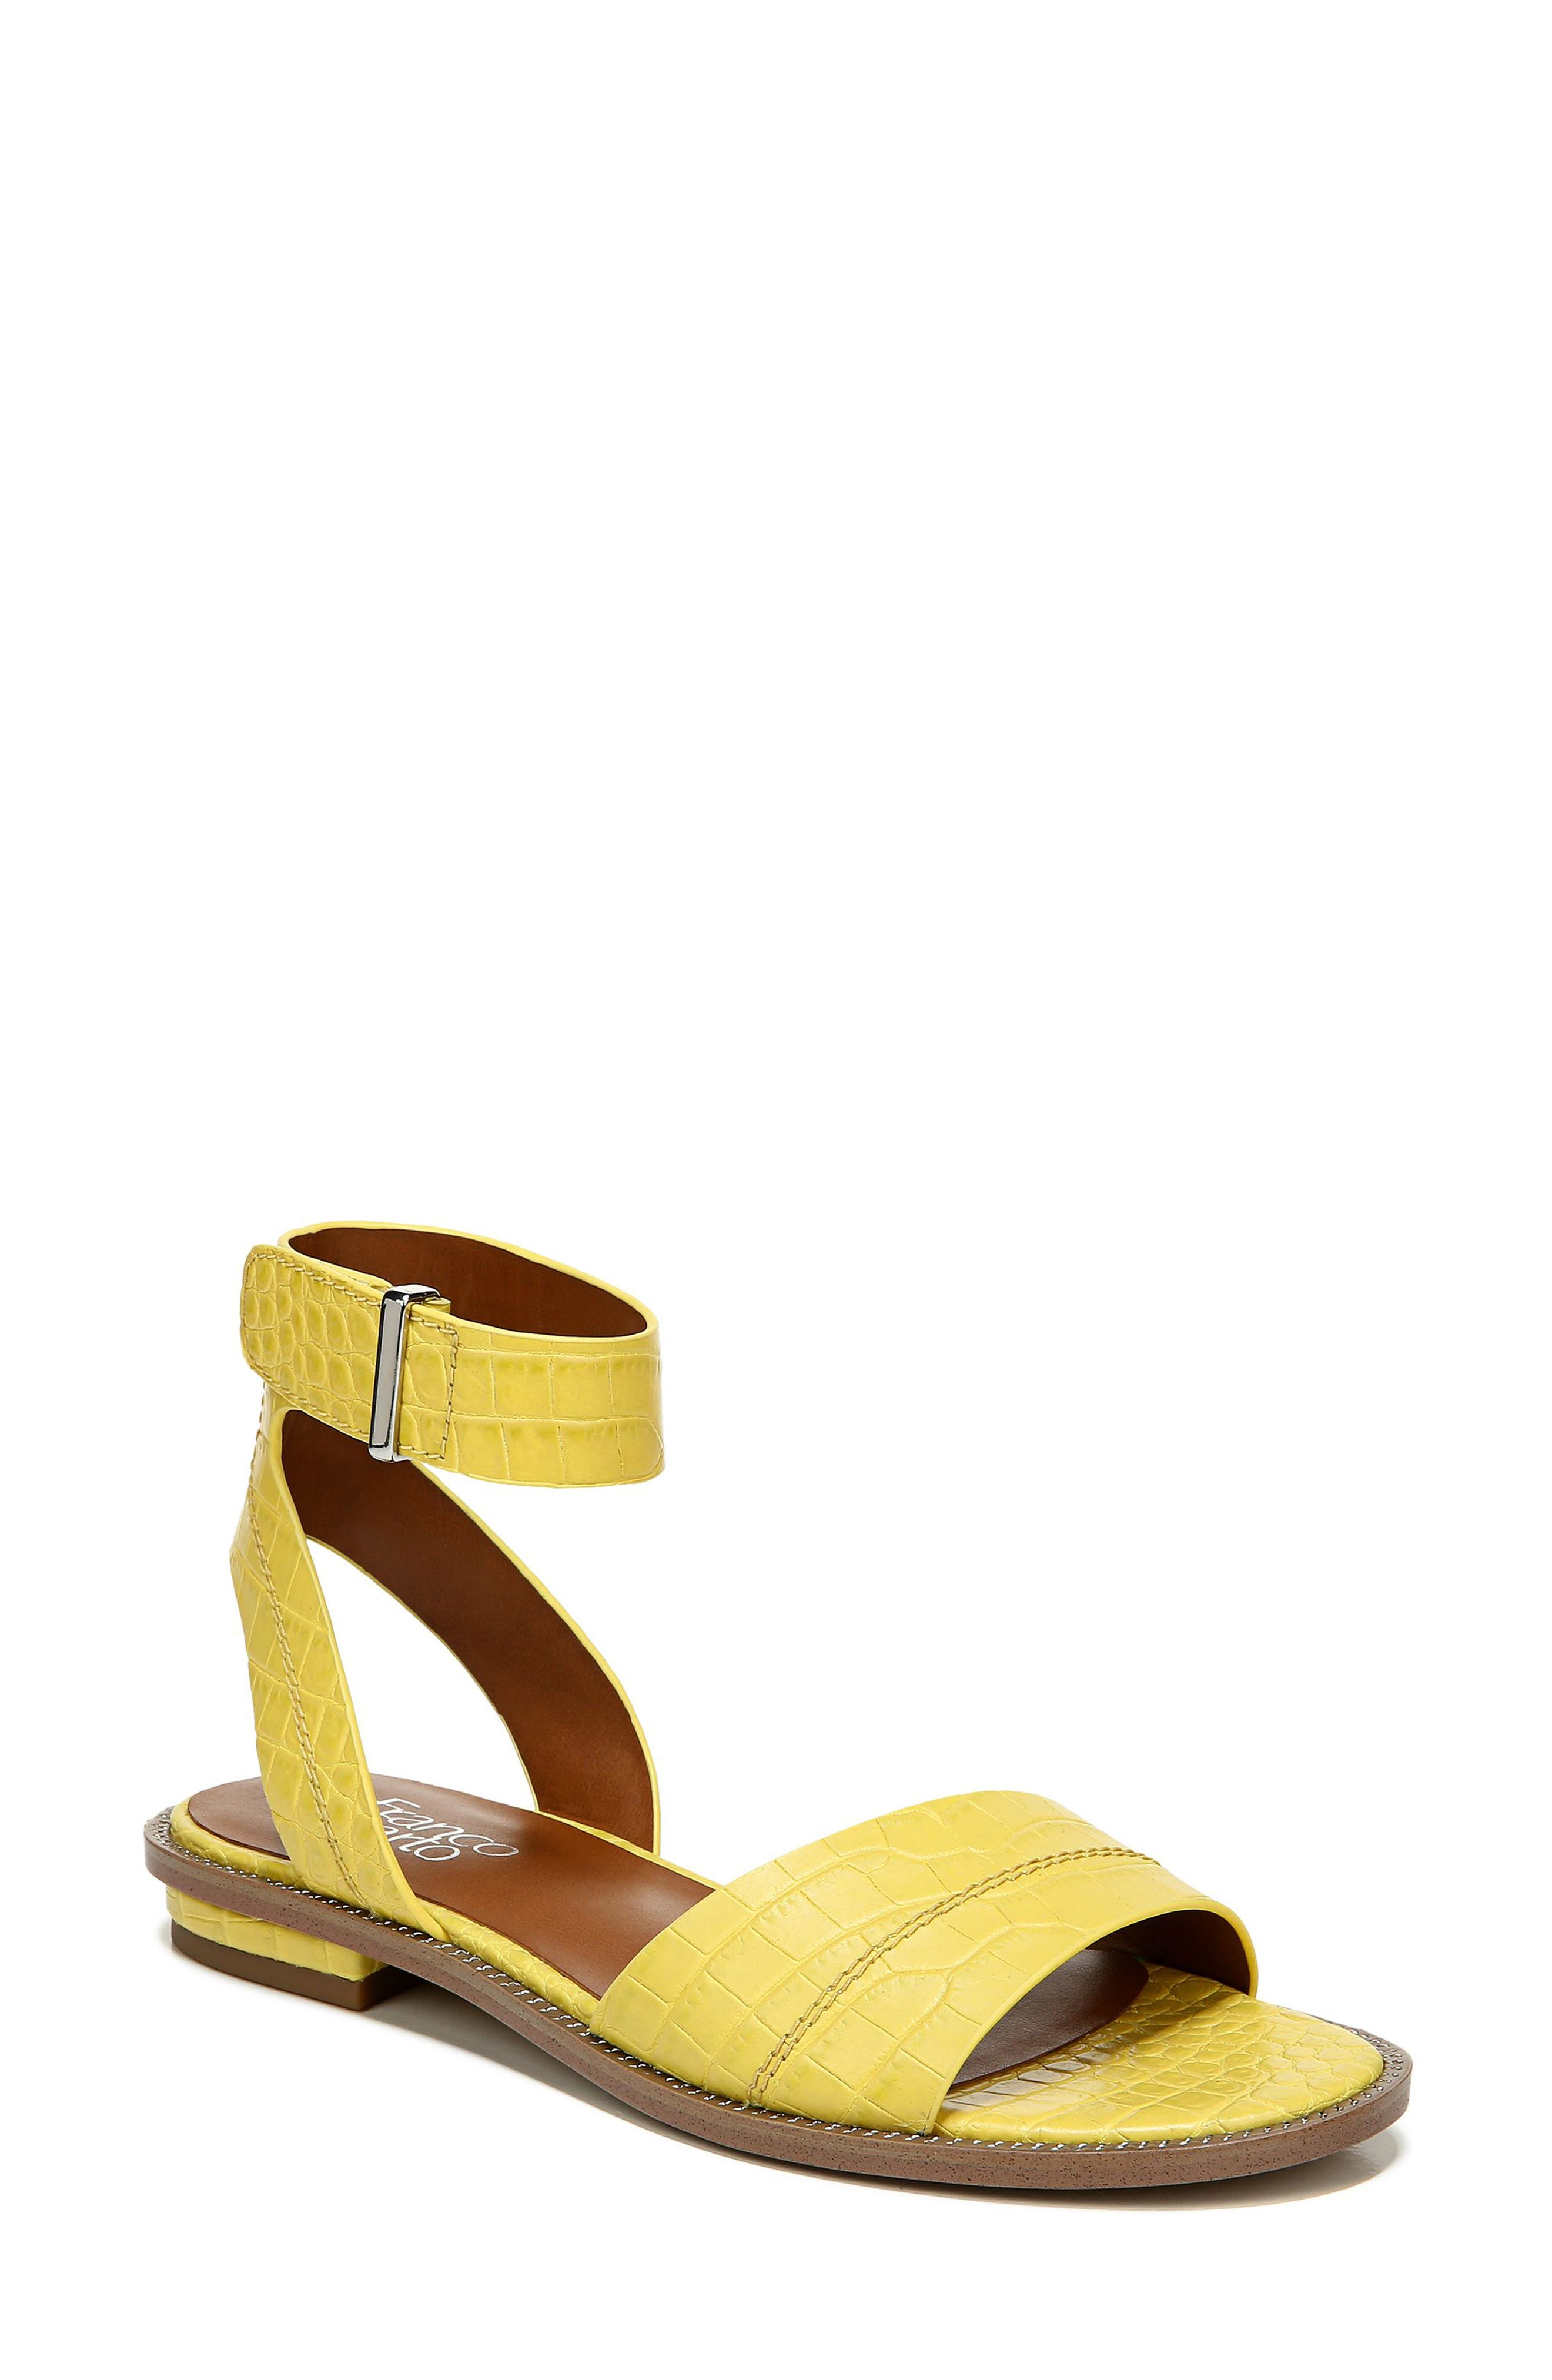 Sleek hardware highlights the easily adjustable hook-and-loop ankle strap on a versatile sandal that\\\'s as convenient as it is comfortable. Style Name: Franco Sarto Maxine Ankle Strap Sandal (Women). Style Number: 6080319. Available in stores.